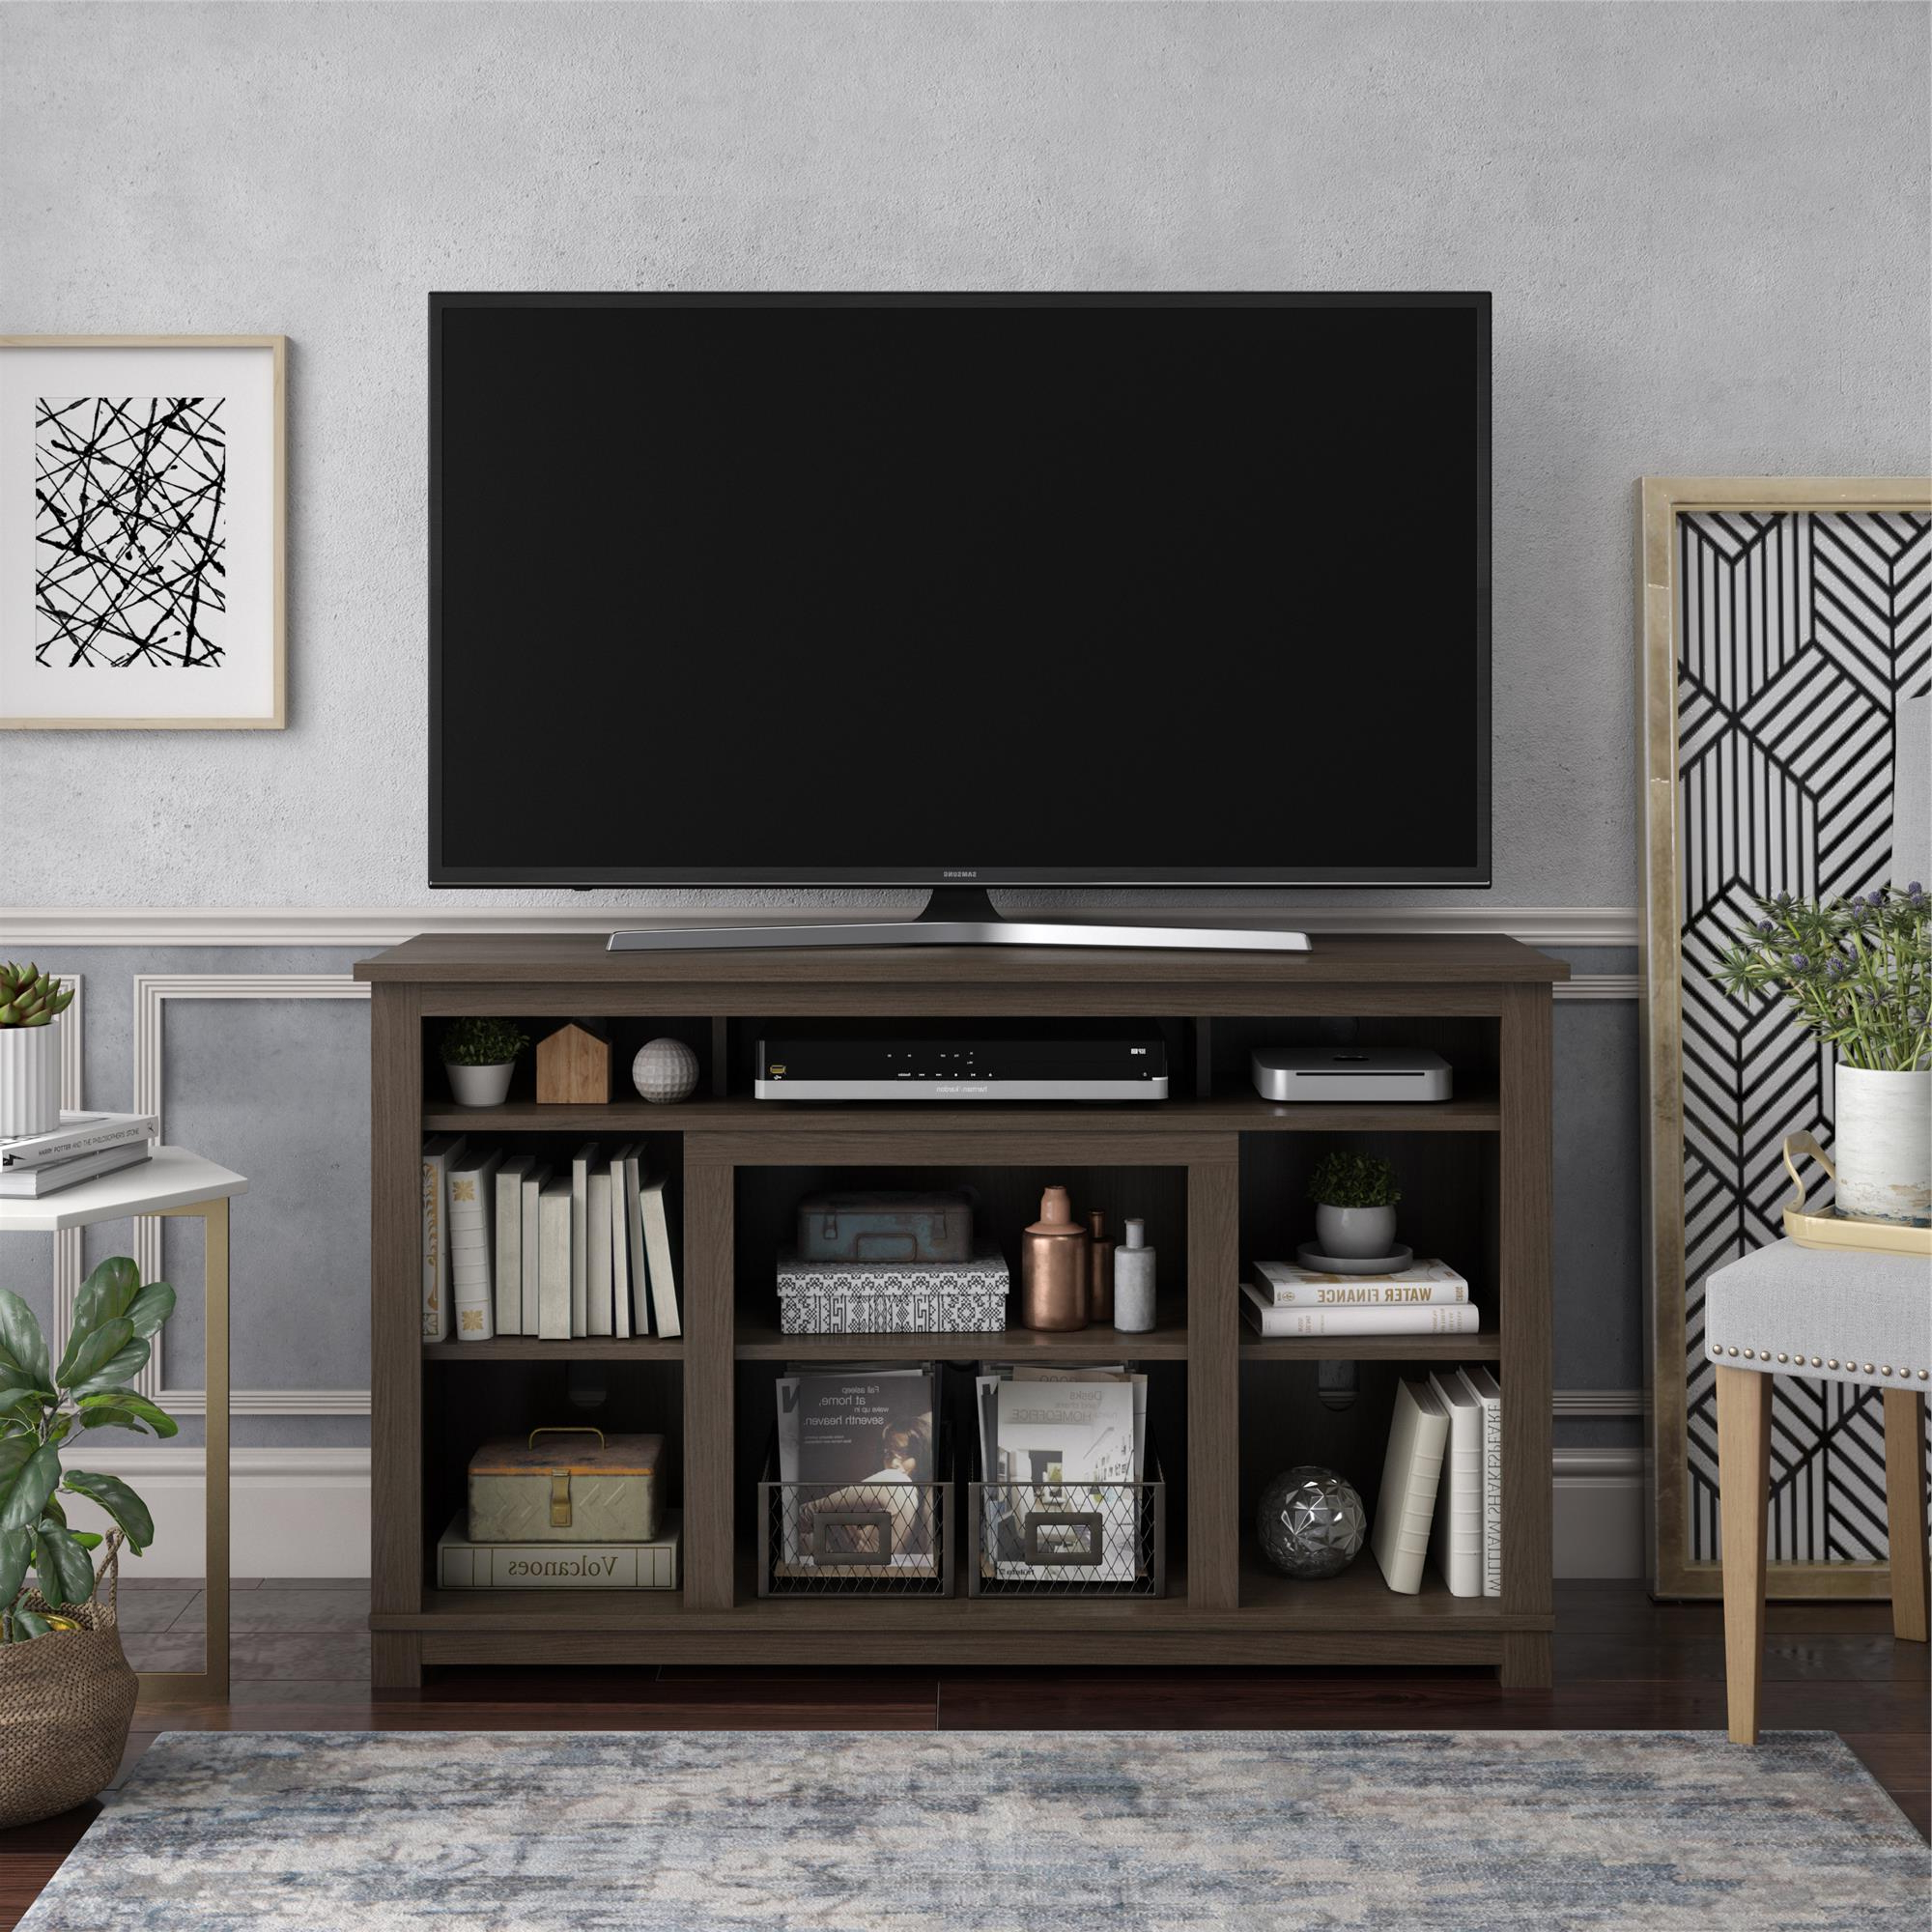 """Ameriwood Home Edgewood Tv Stand For Tvs Up To 55 Pertaining To Spellman Tv Stands For Tvs Up To 55"""" (View 5 of 20)"""